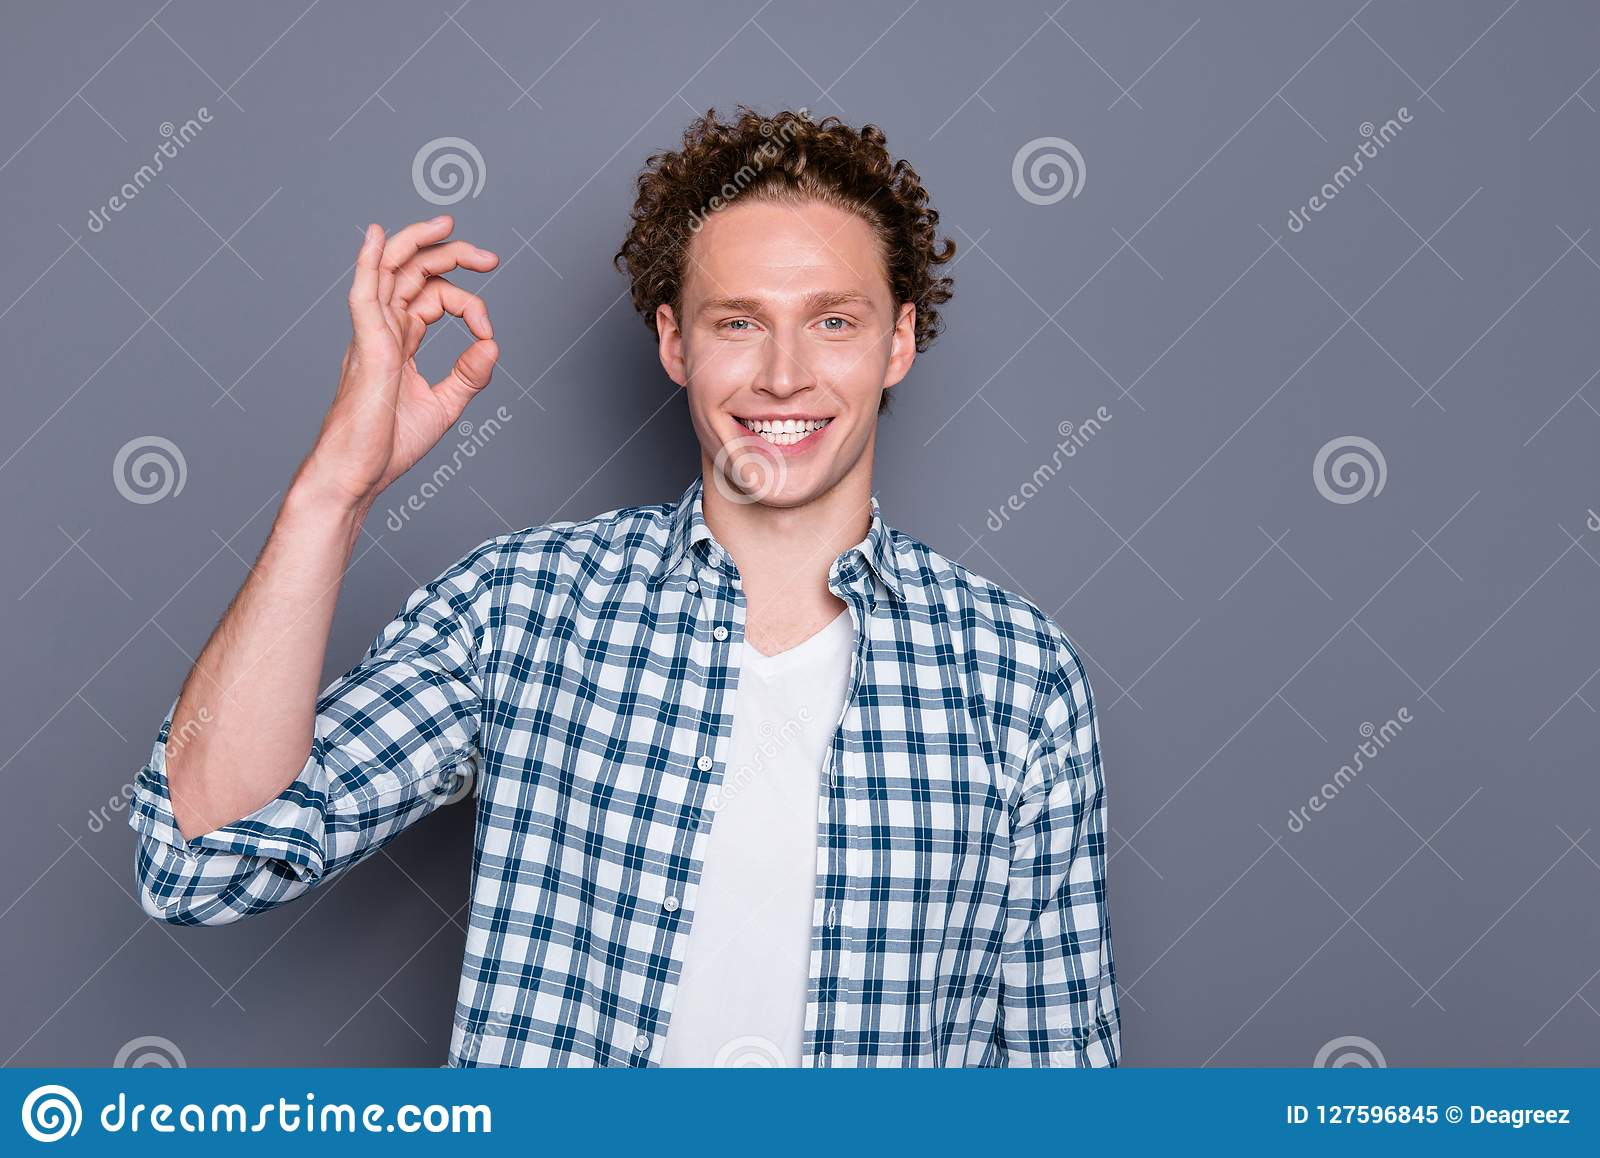 Close up photo portrait ofsatisfied cool handsome guy making ok symbol grey background